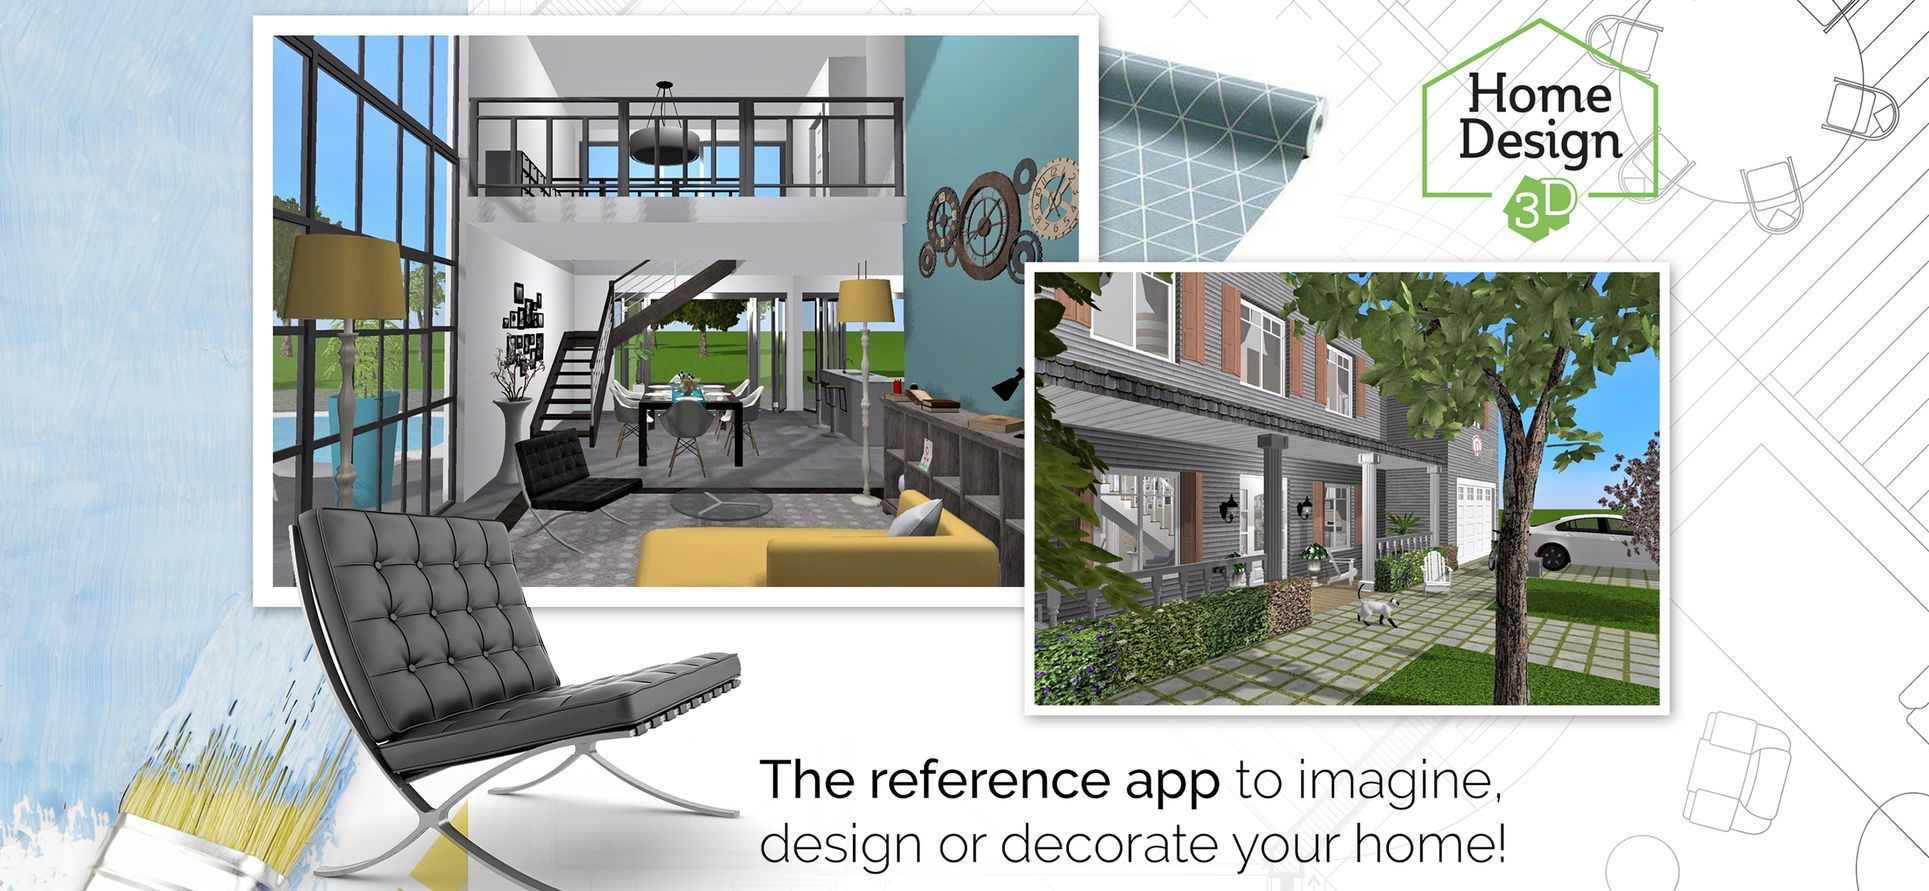 Home Design 3D GOLD #Lifestyle#Productivity#apps#ios